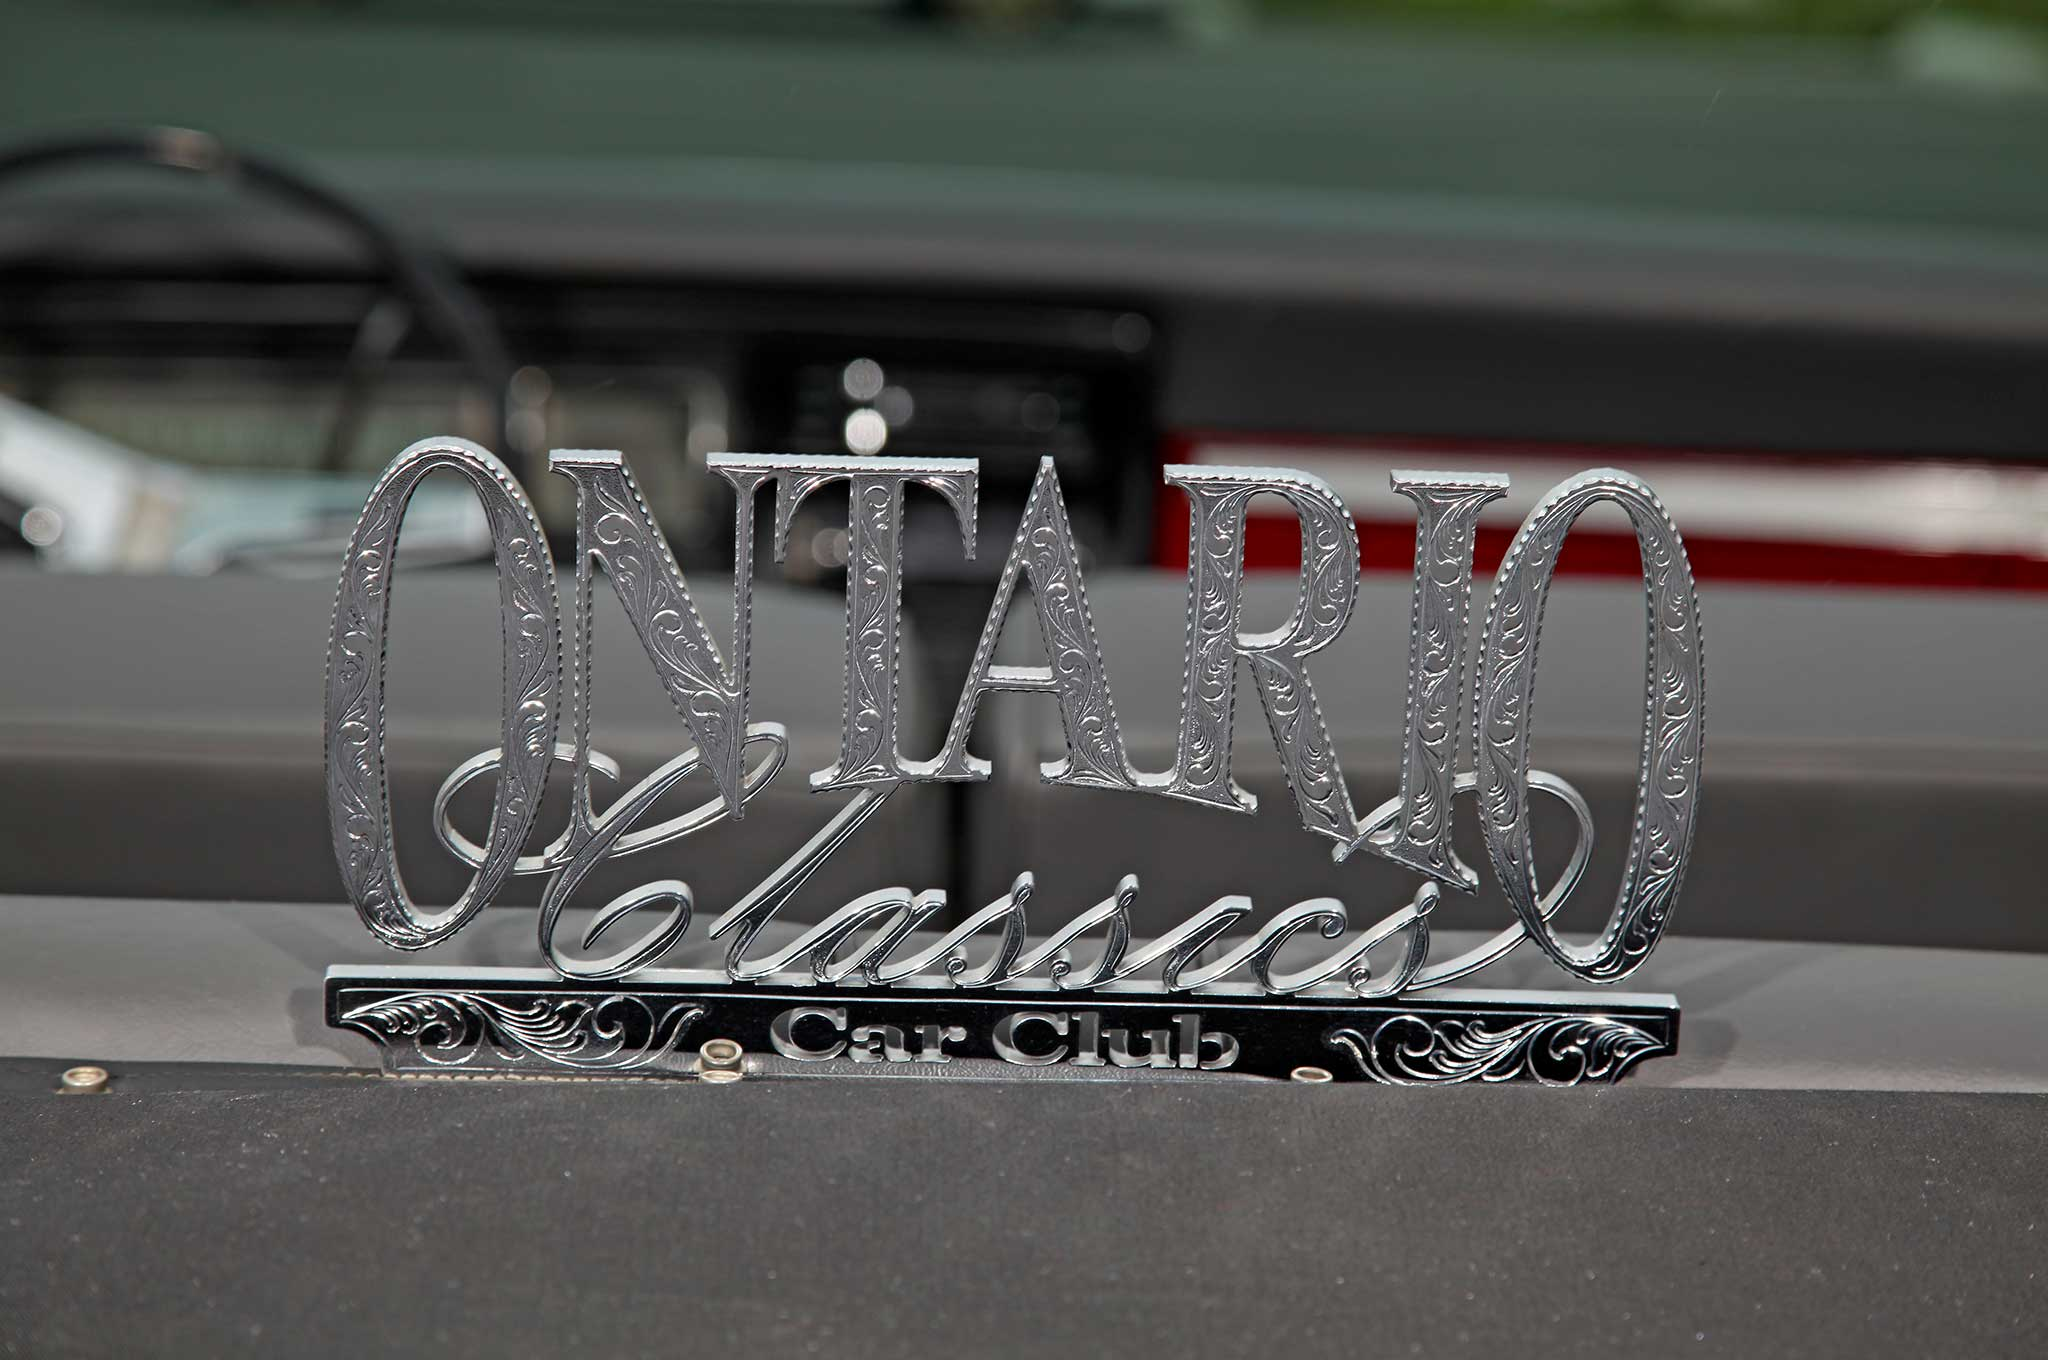 1968-chevrolet-impala-convertible-ontario-classics-club-plaque